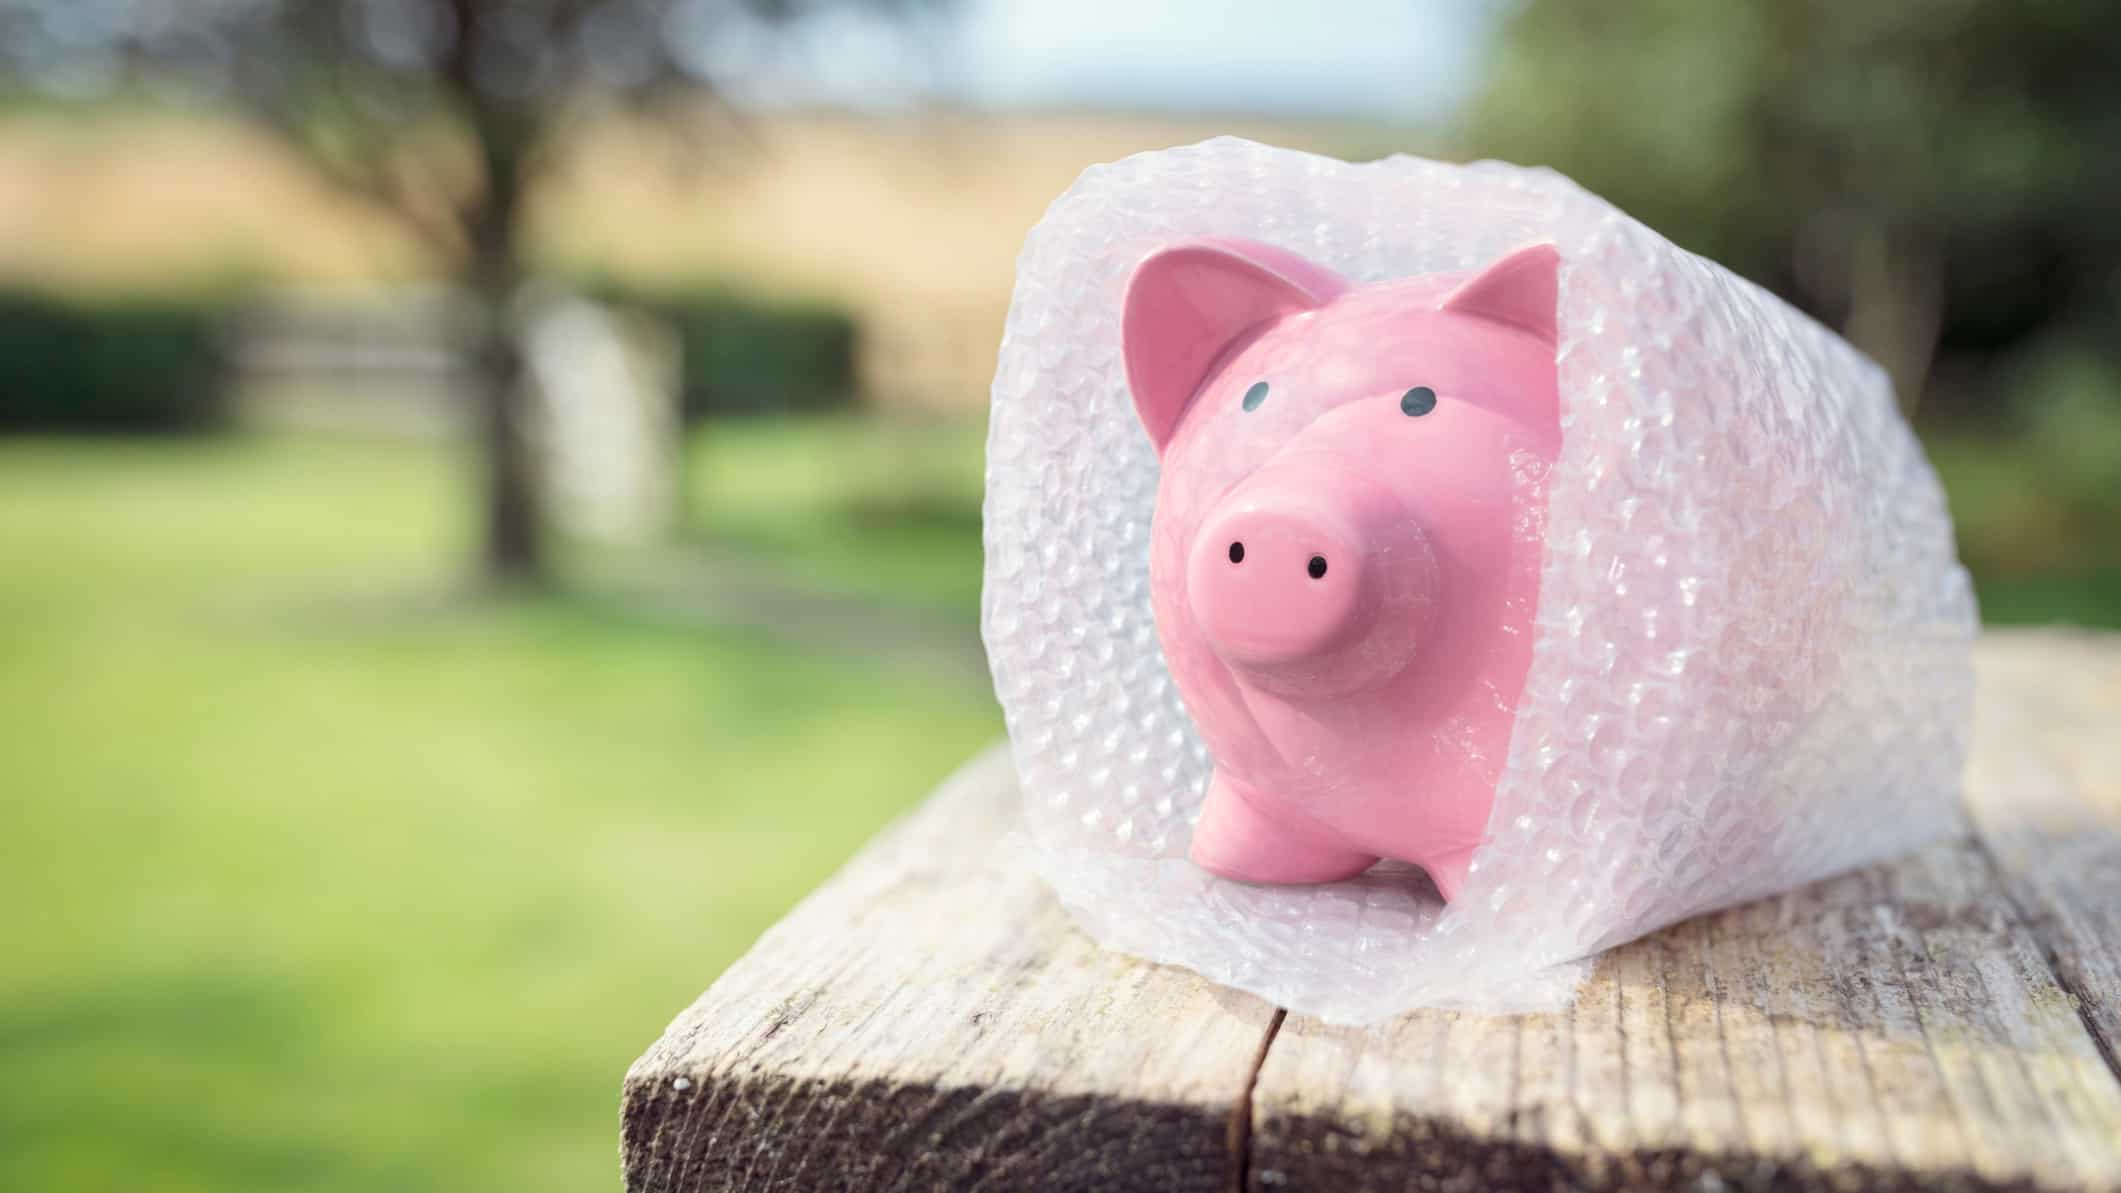 safe dividend yield represented by a piggy bank wrapped in bubble wrap